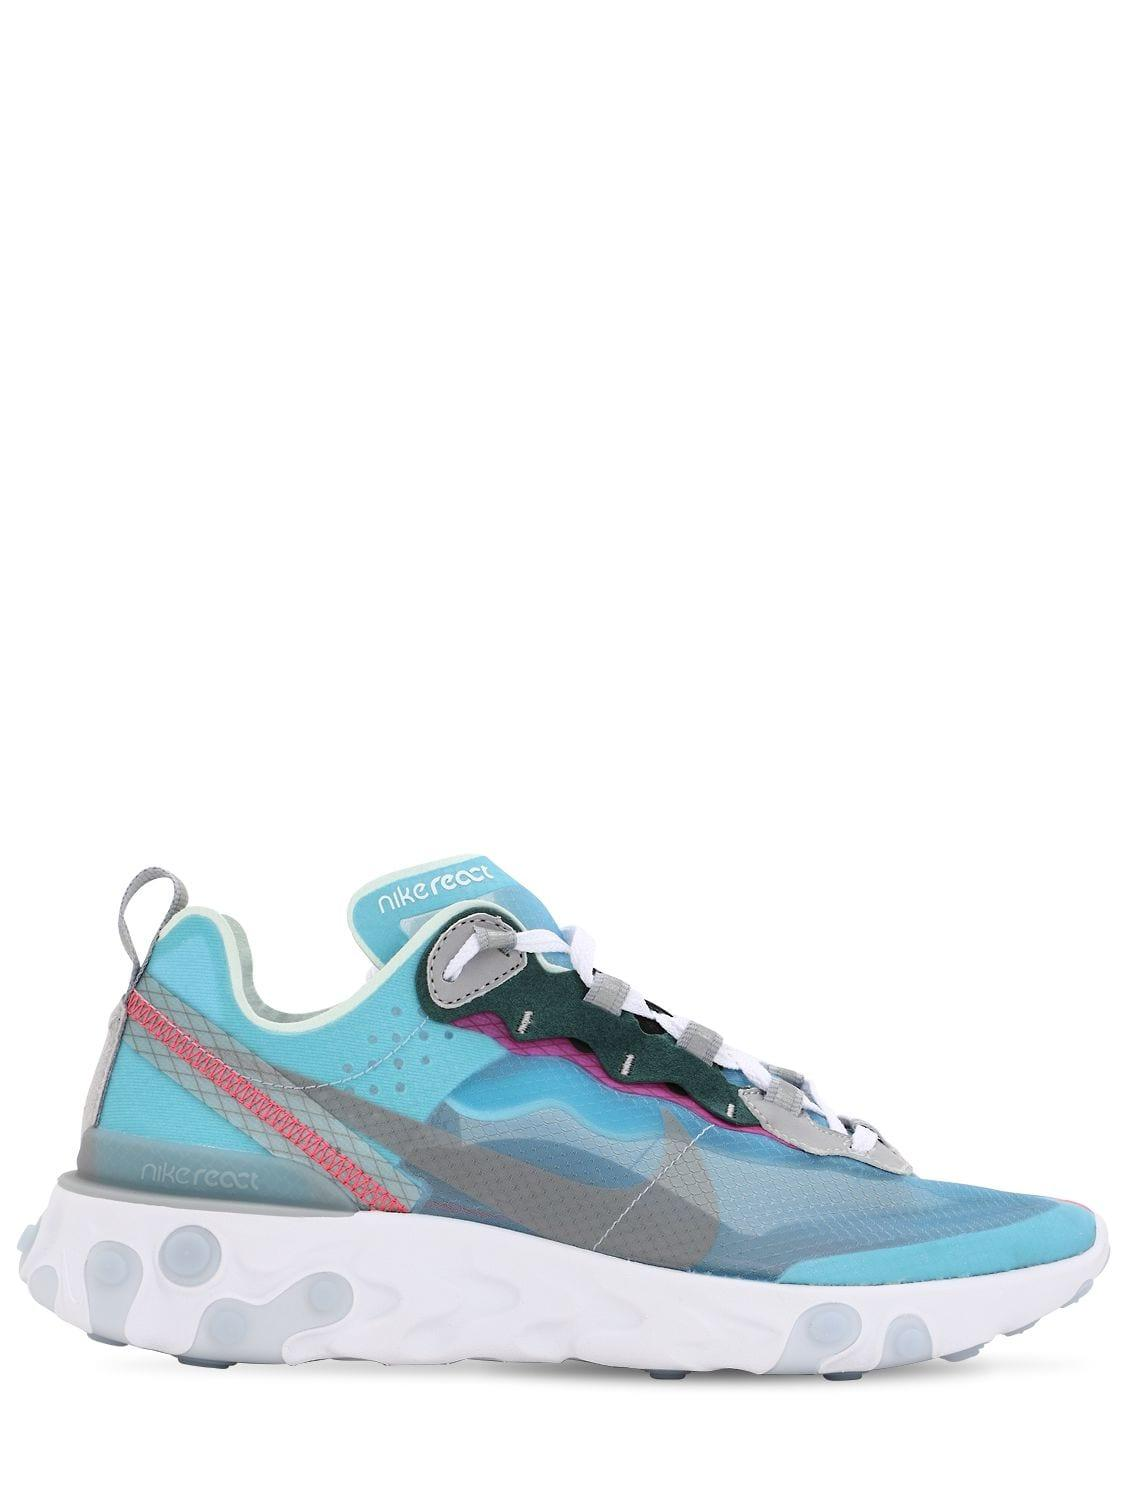 375be49c7bab Lyst - Nike React Element 87 Sneakers in Blue